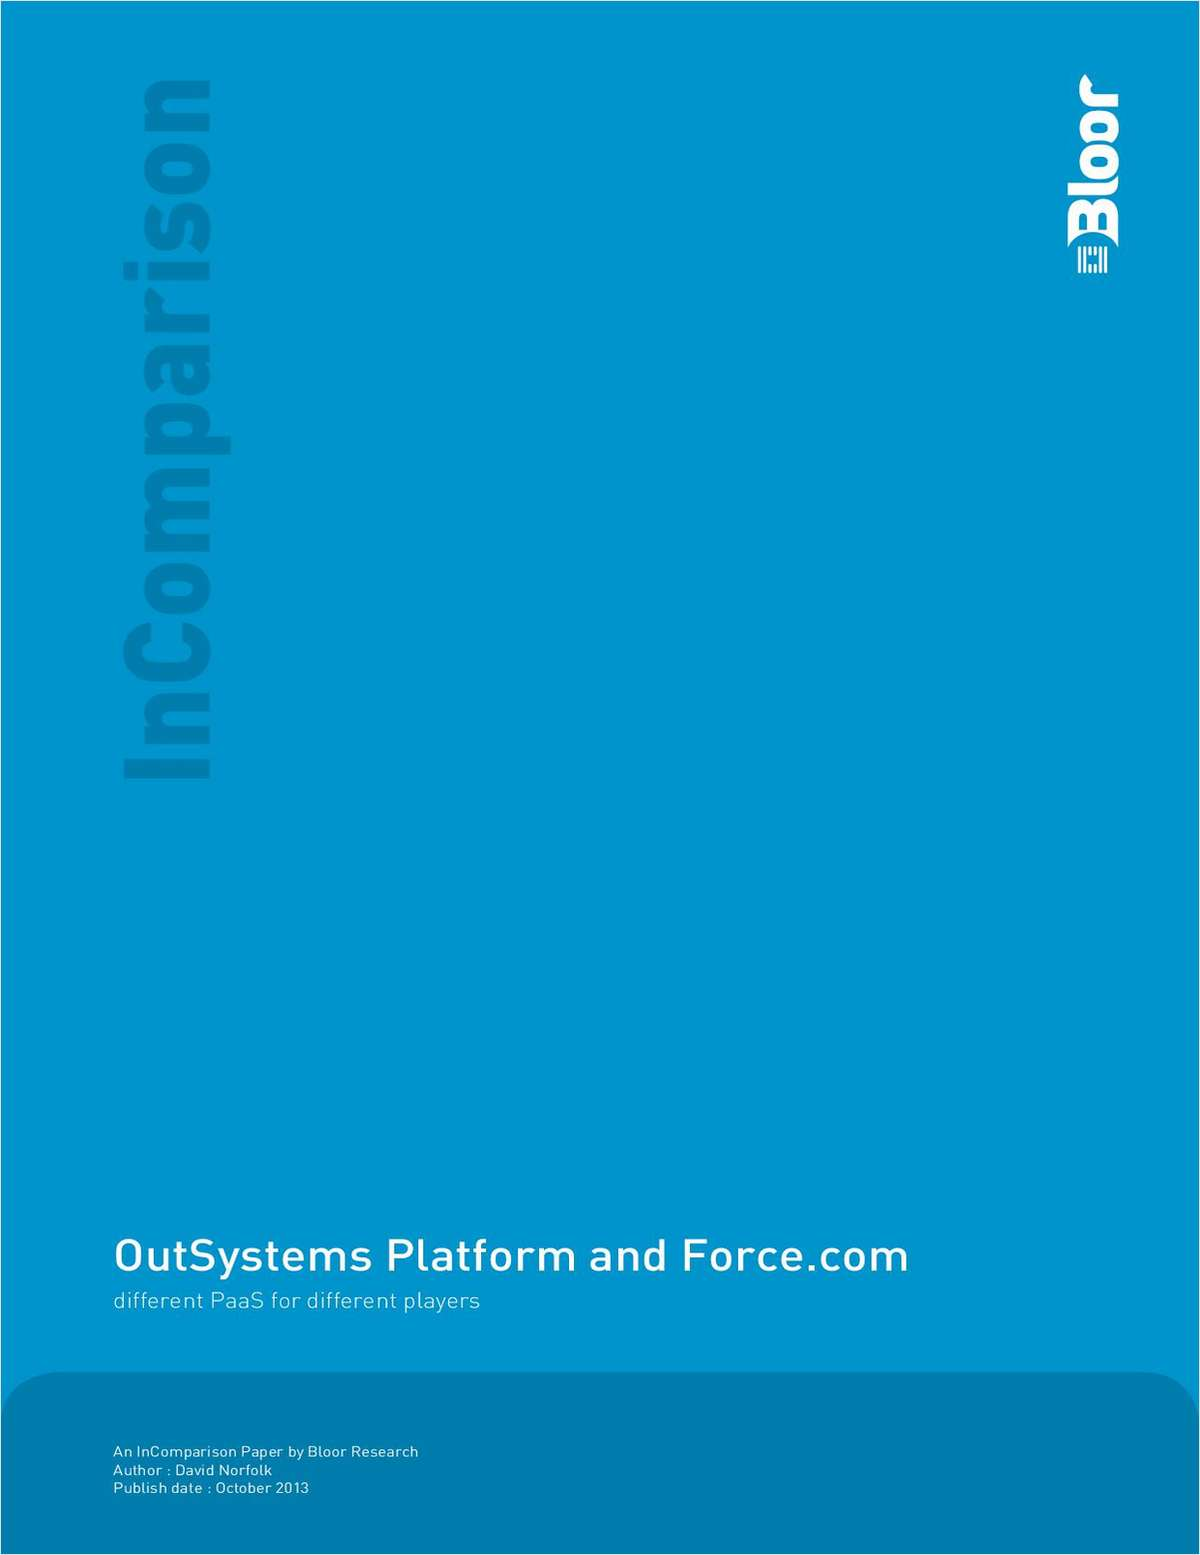 OutSystems Platform and Force.com: Different PaaS for Different Players